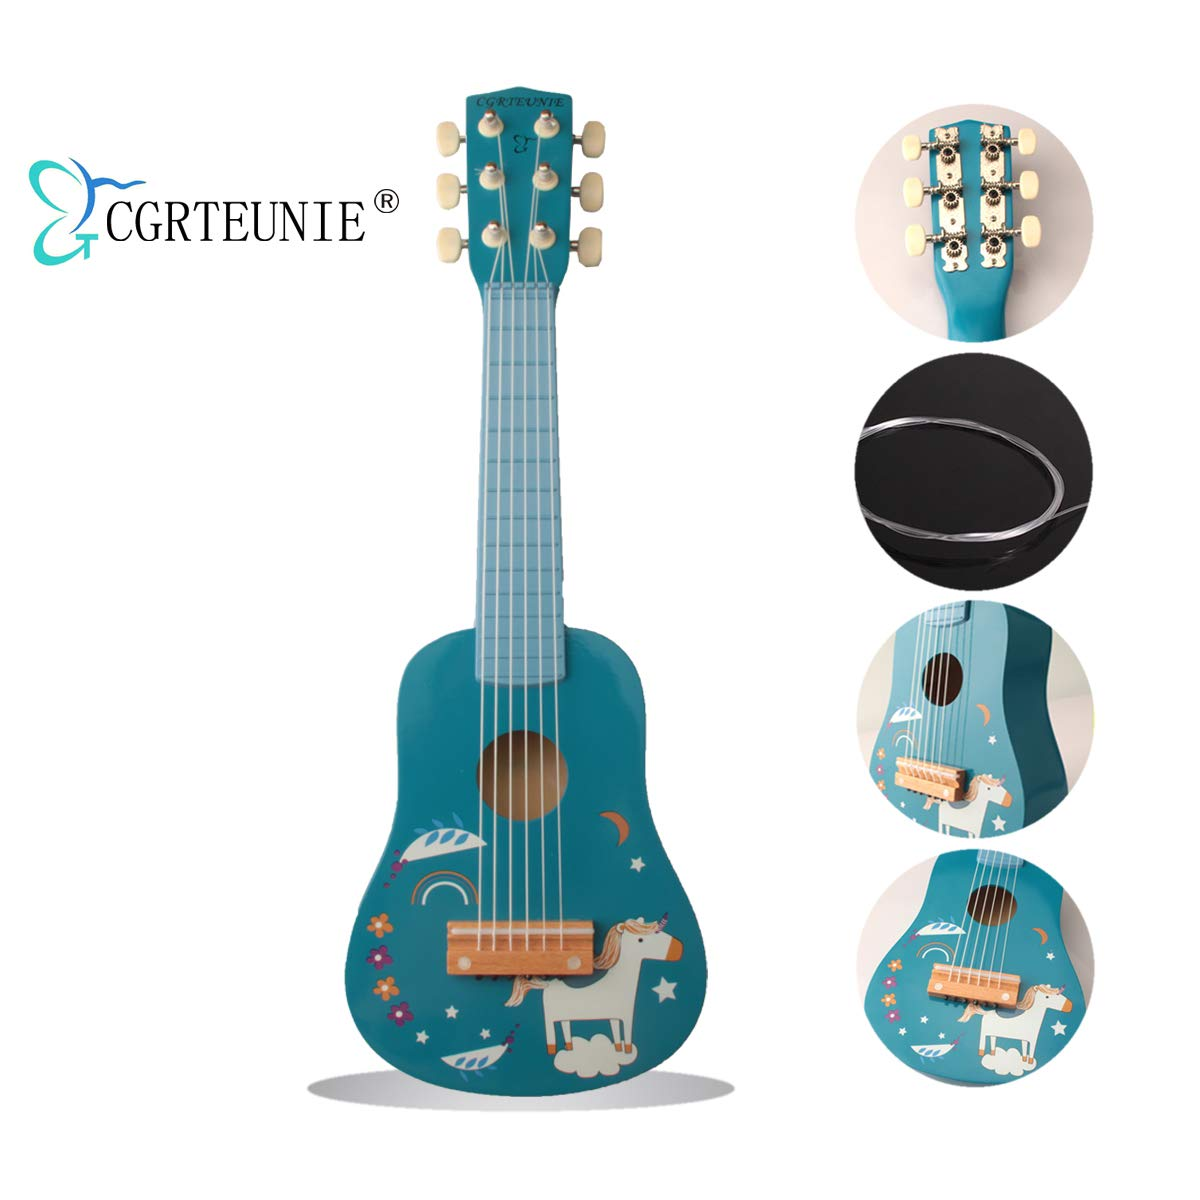 CGRTEUNIE Classical Acoustic 6 String 21 Inch Handmade Wooden Guitar Ukulele Rhyme Developmental Musical Instrument Educational Toy for Toddlers Children Beginner Fingering Practice